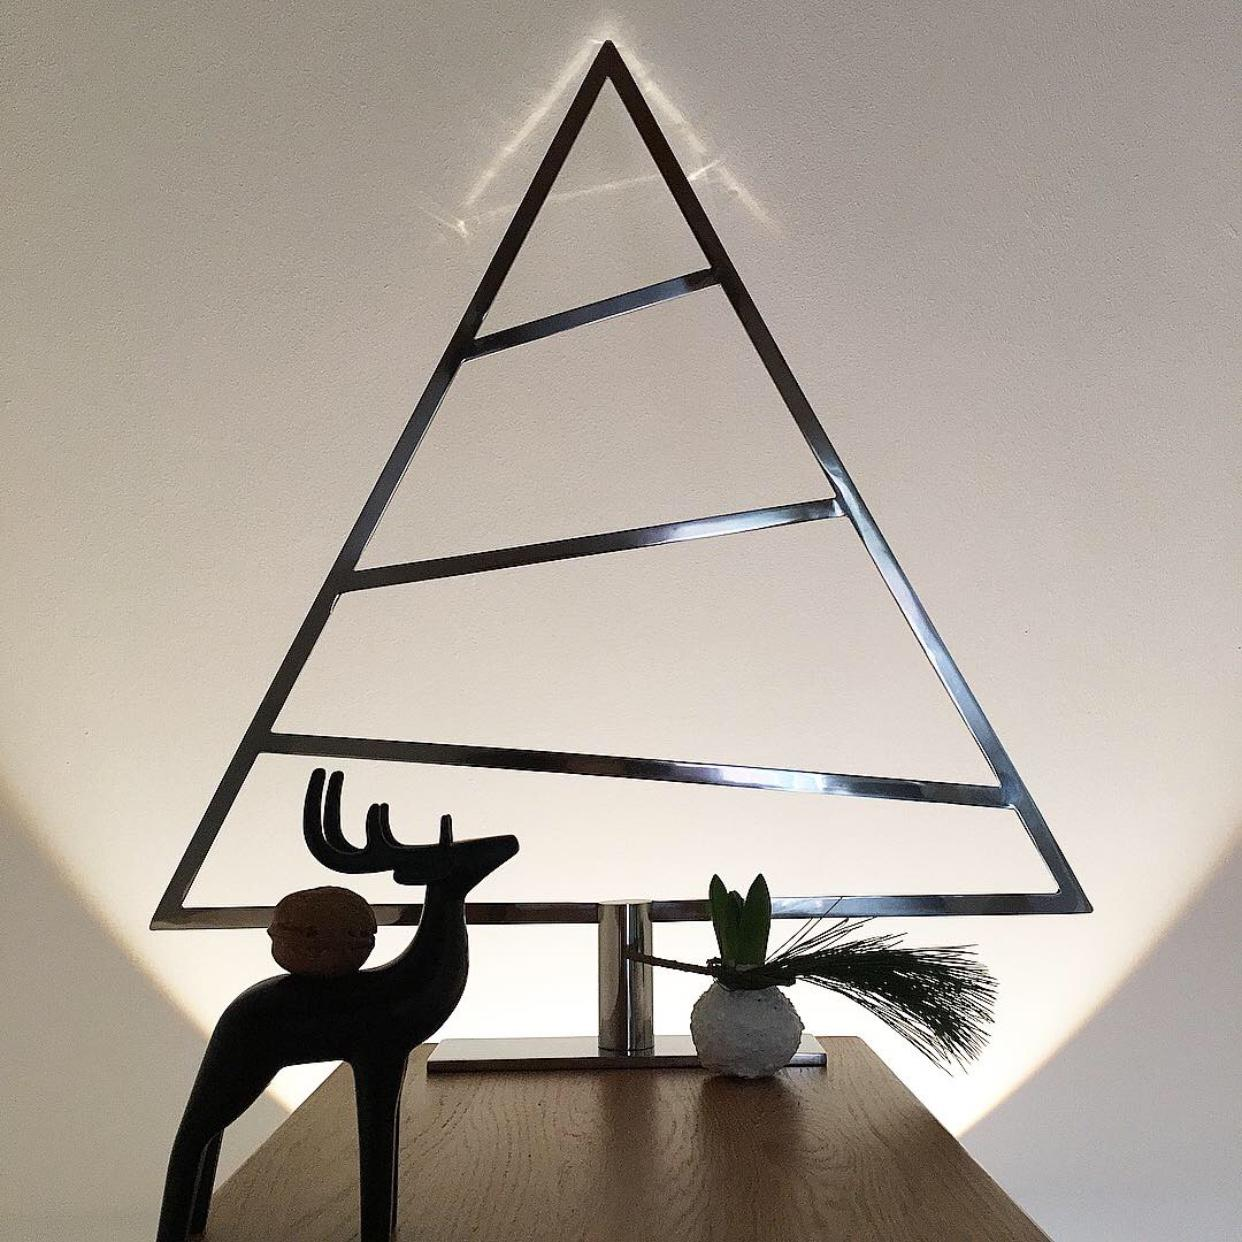 Adventsdekoration | less is more #nordicstyle #weihnachtsbaum #adventsdekoration